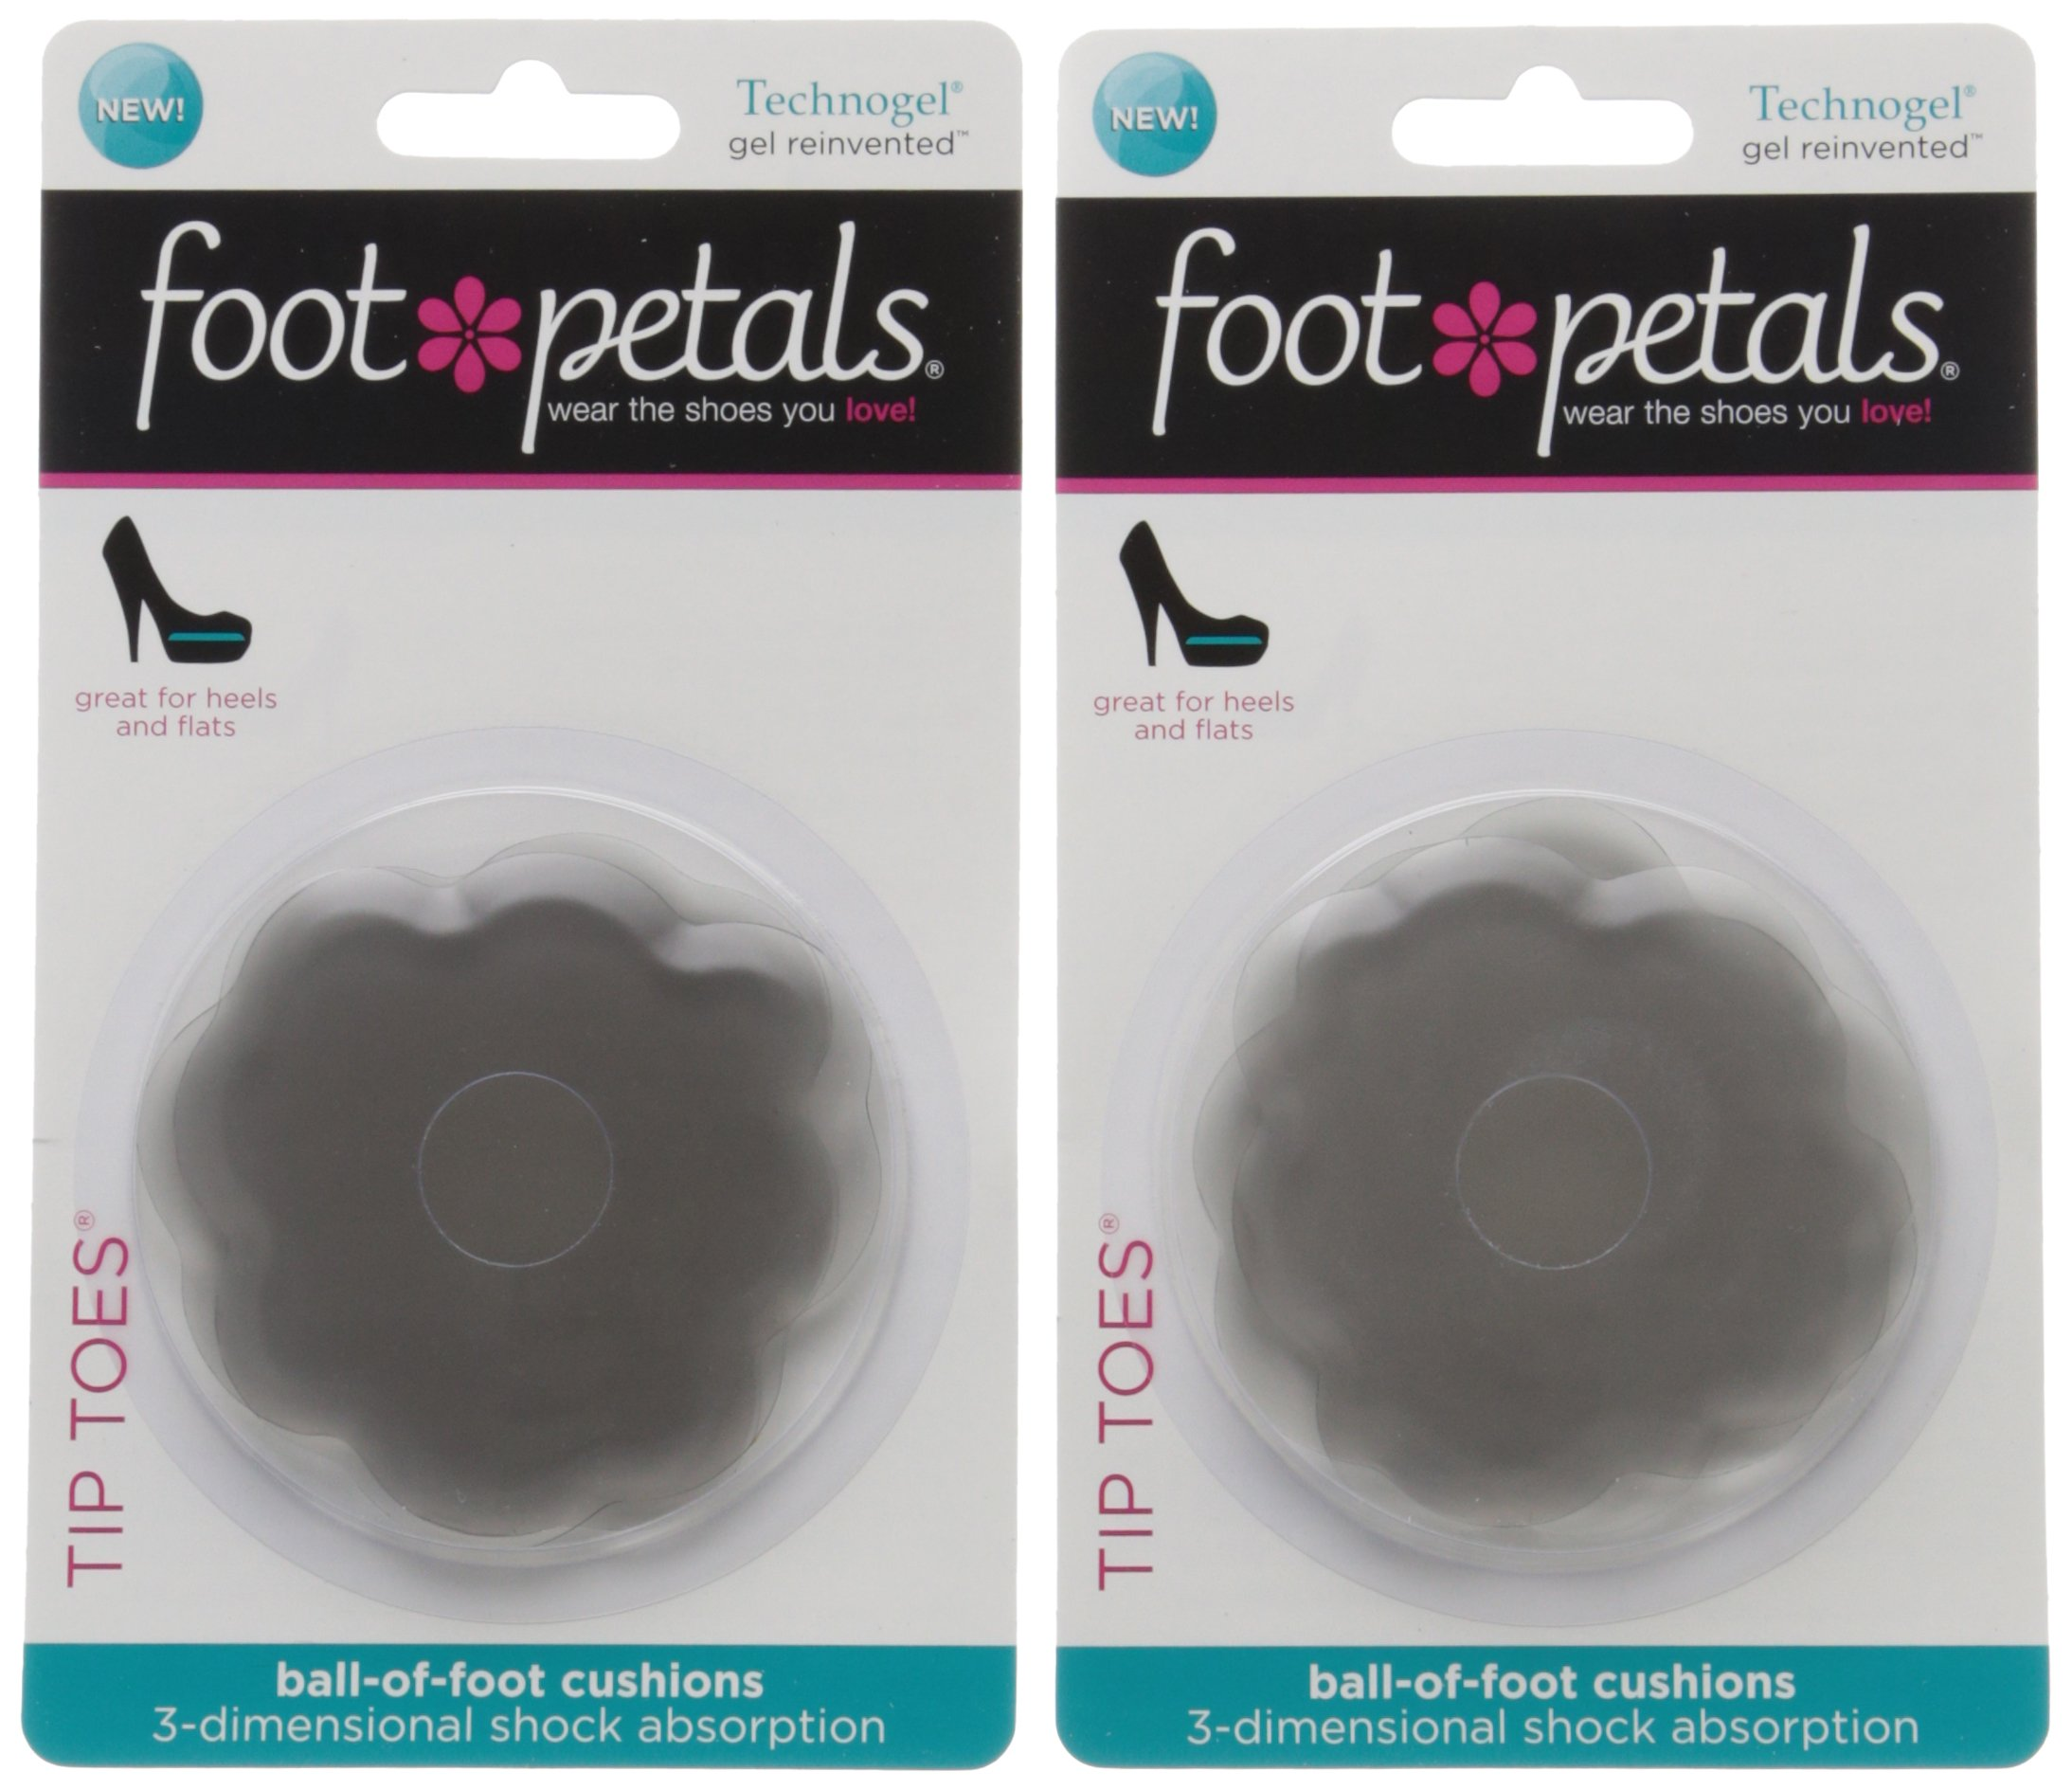 Foot Petals Women's Tip Toes Technogel 2-Pair Pack Insole, Charcoal, Medium/One Size M US